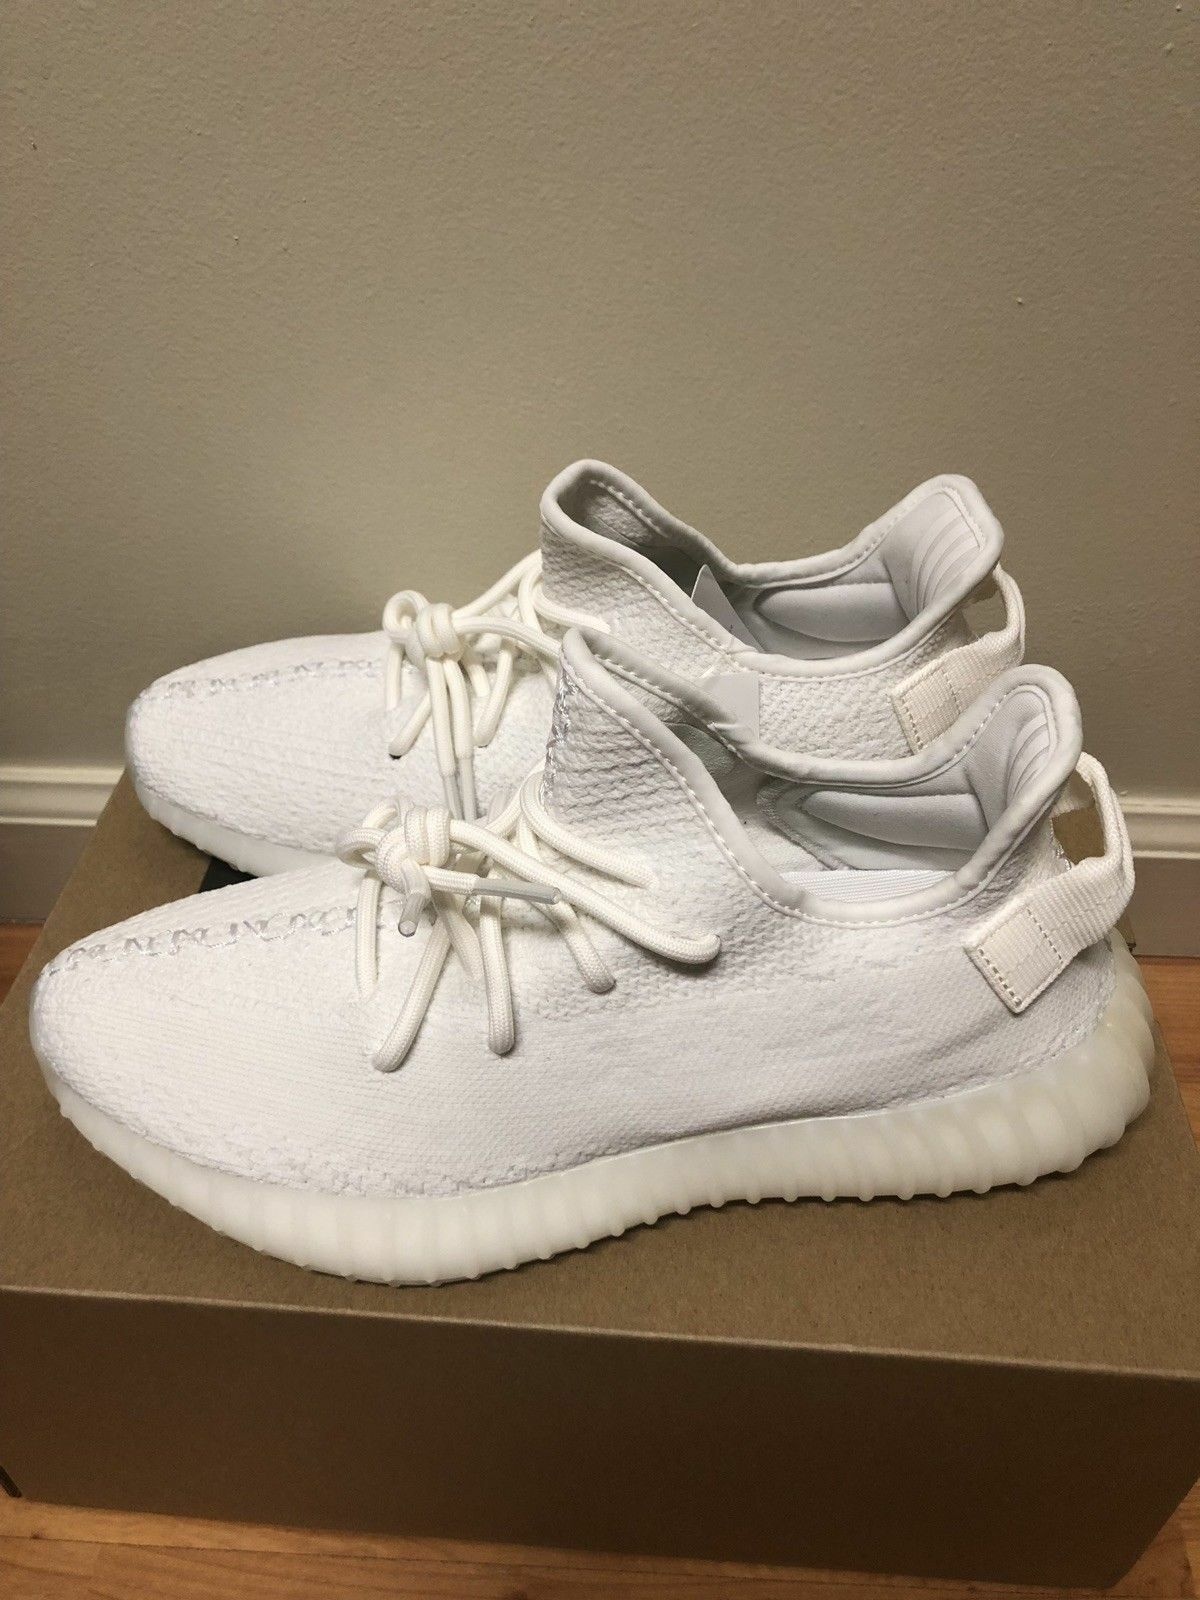 008908b4e0b72 adidas Yeezy Boost 350 V2 Triple White Cream 100 Size 6 for sale ...